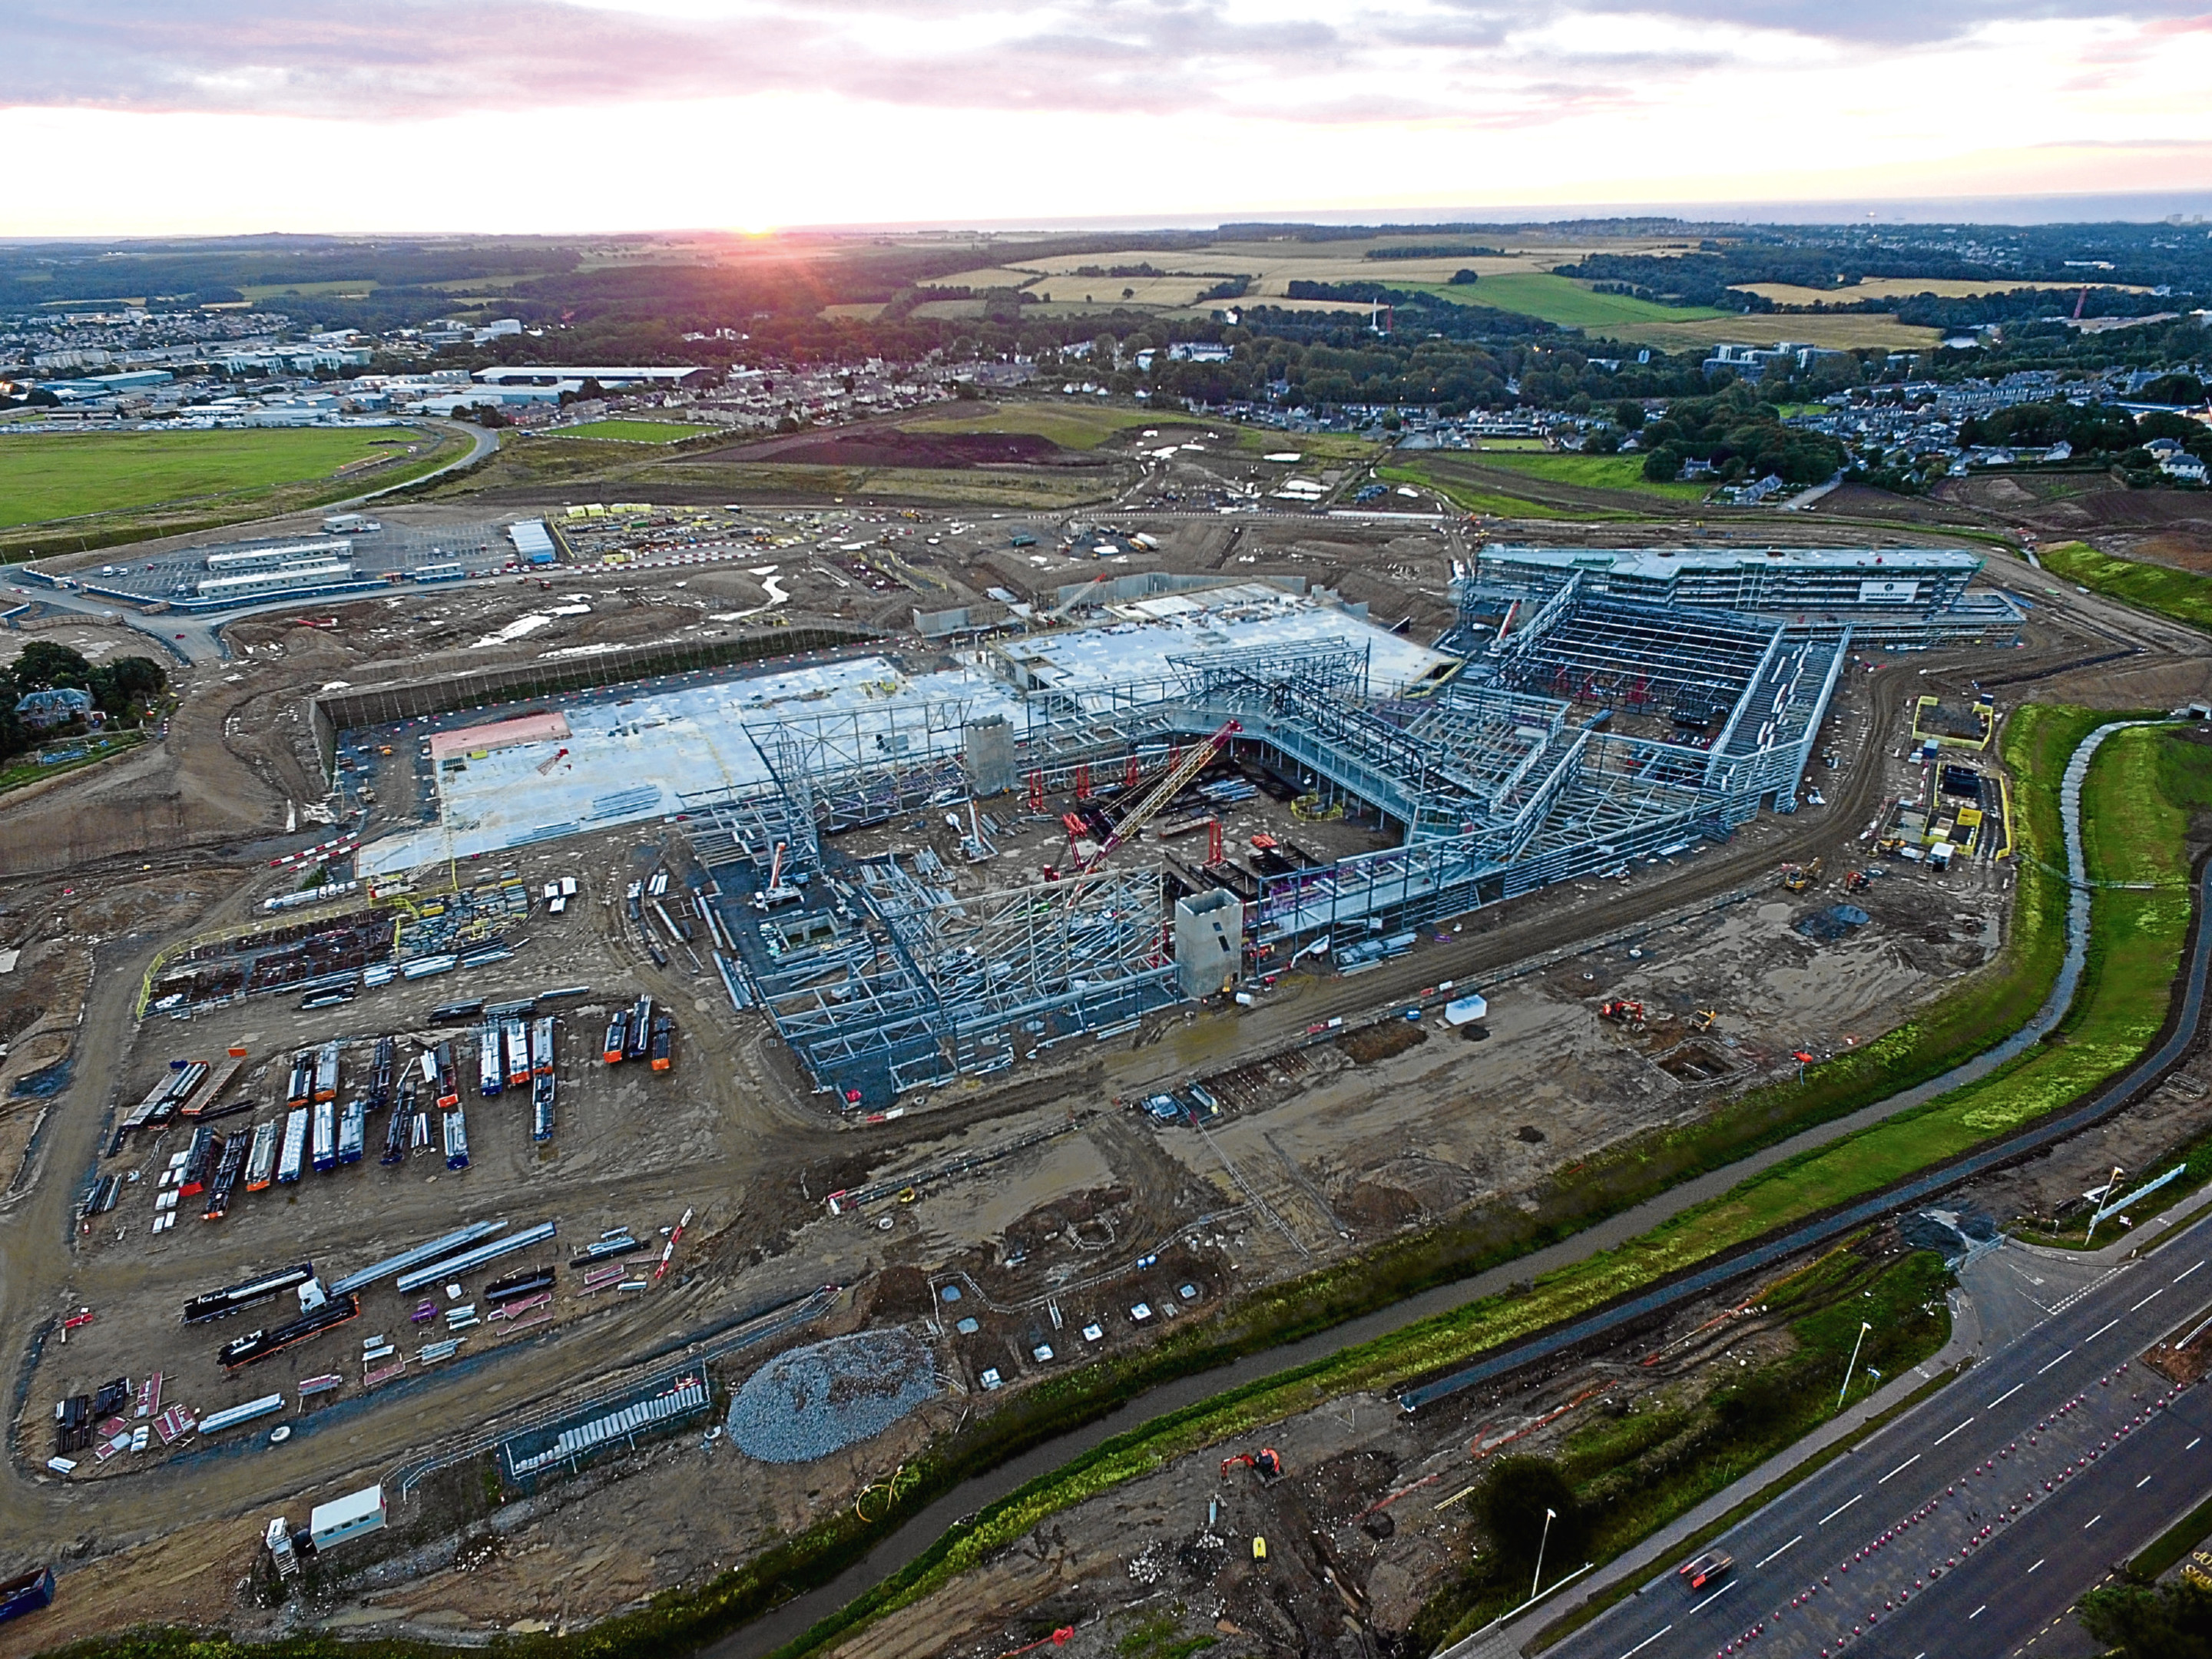 The new Aberdeen Exhibition and Conference Centre is under construction